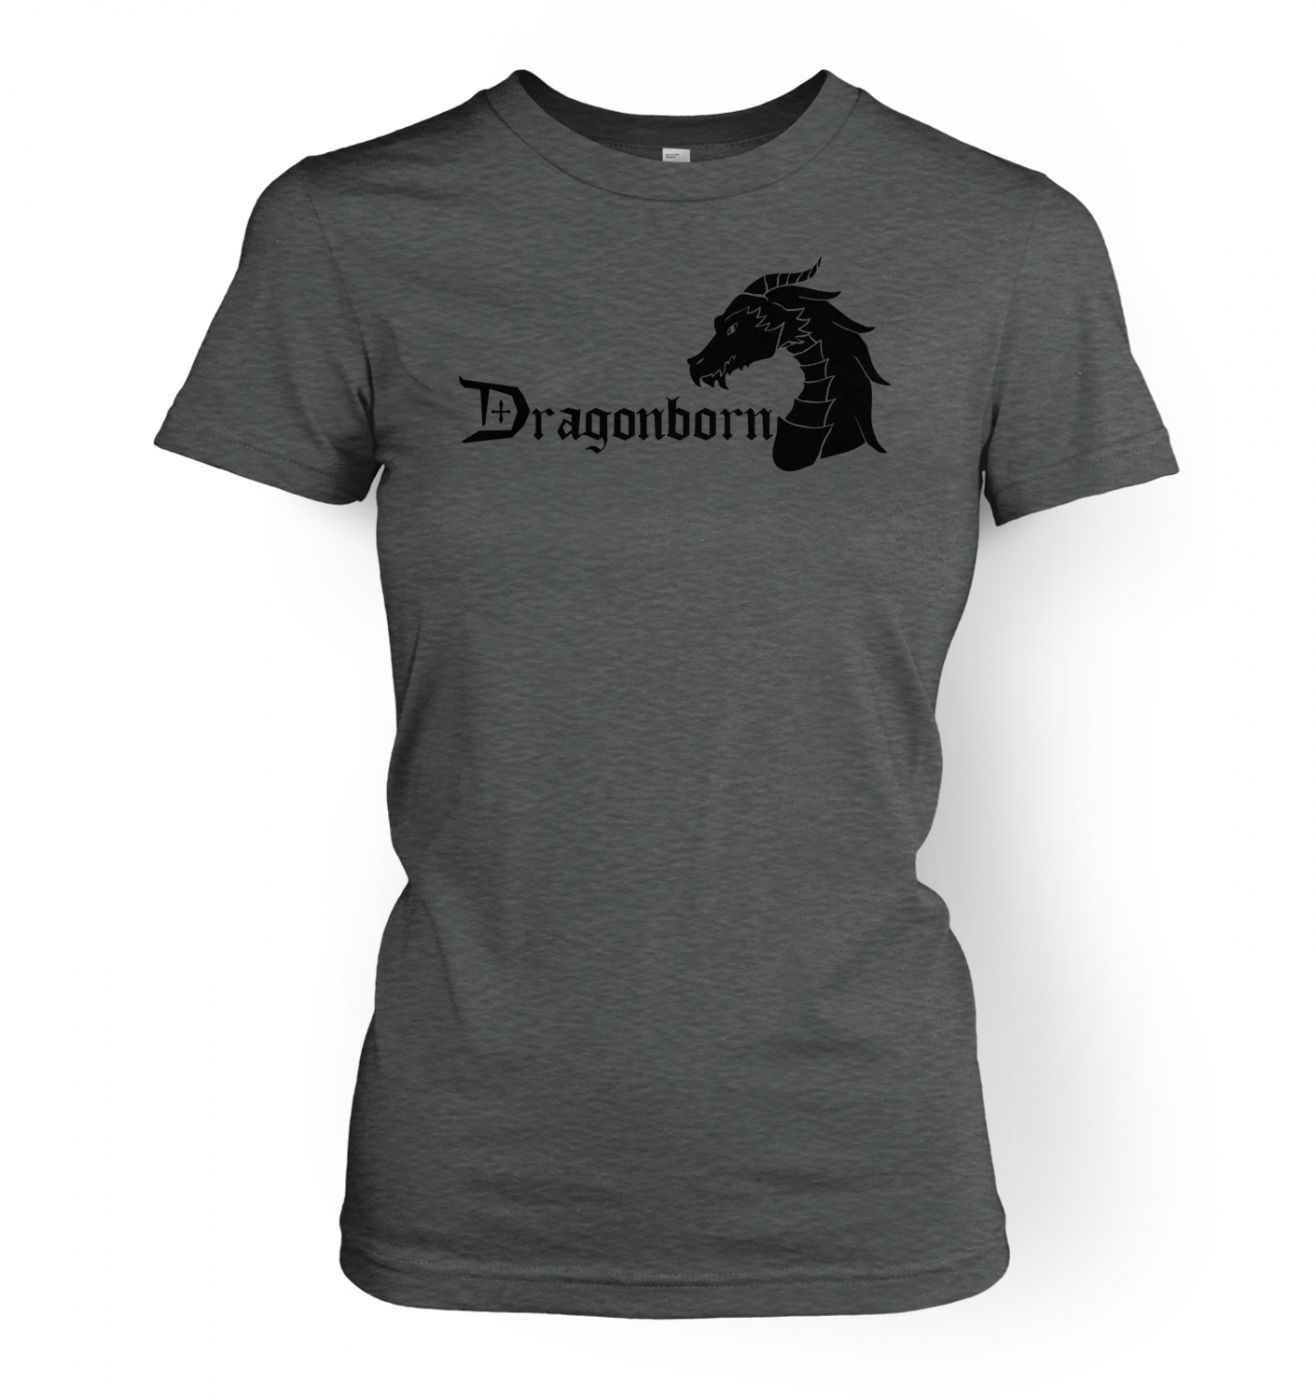 Dragonborn women's fitted t-shirt